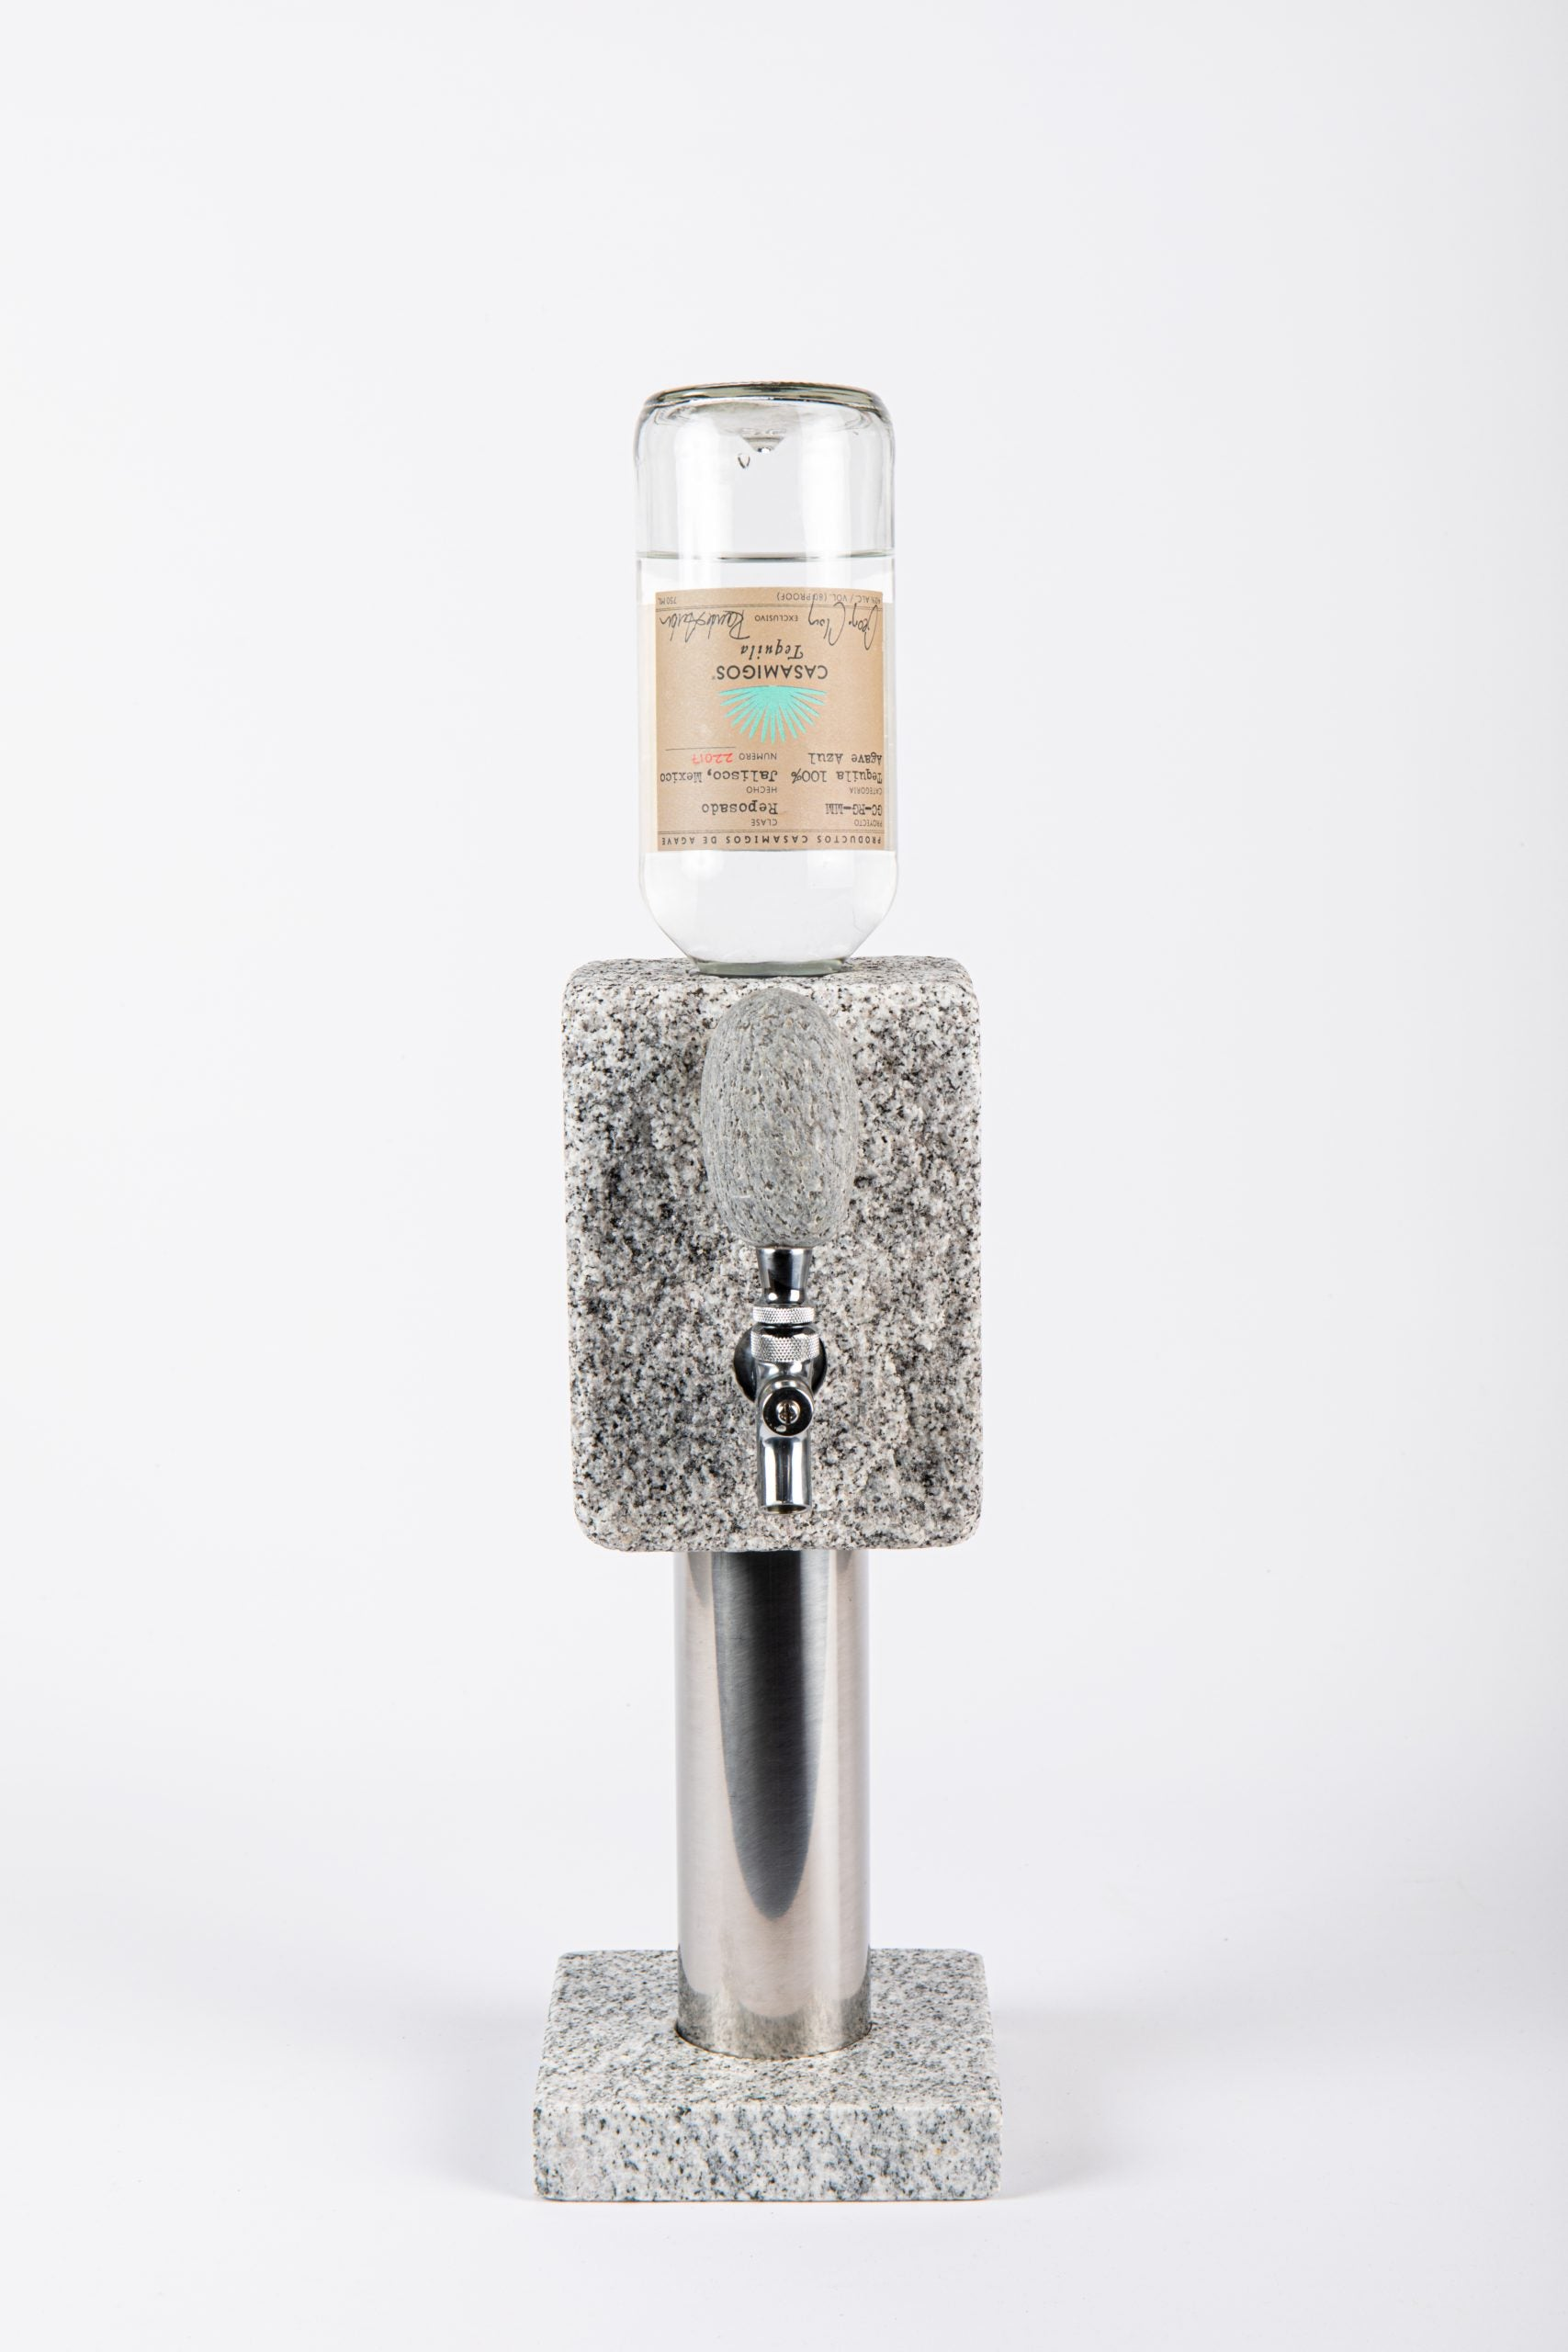 The Ultimate Stone Beverage Dispenser